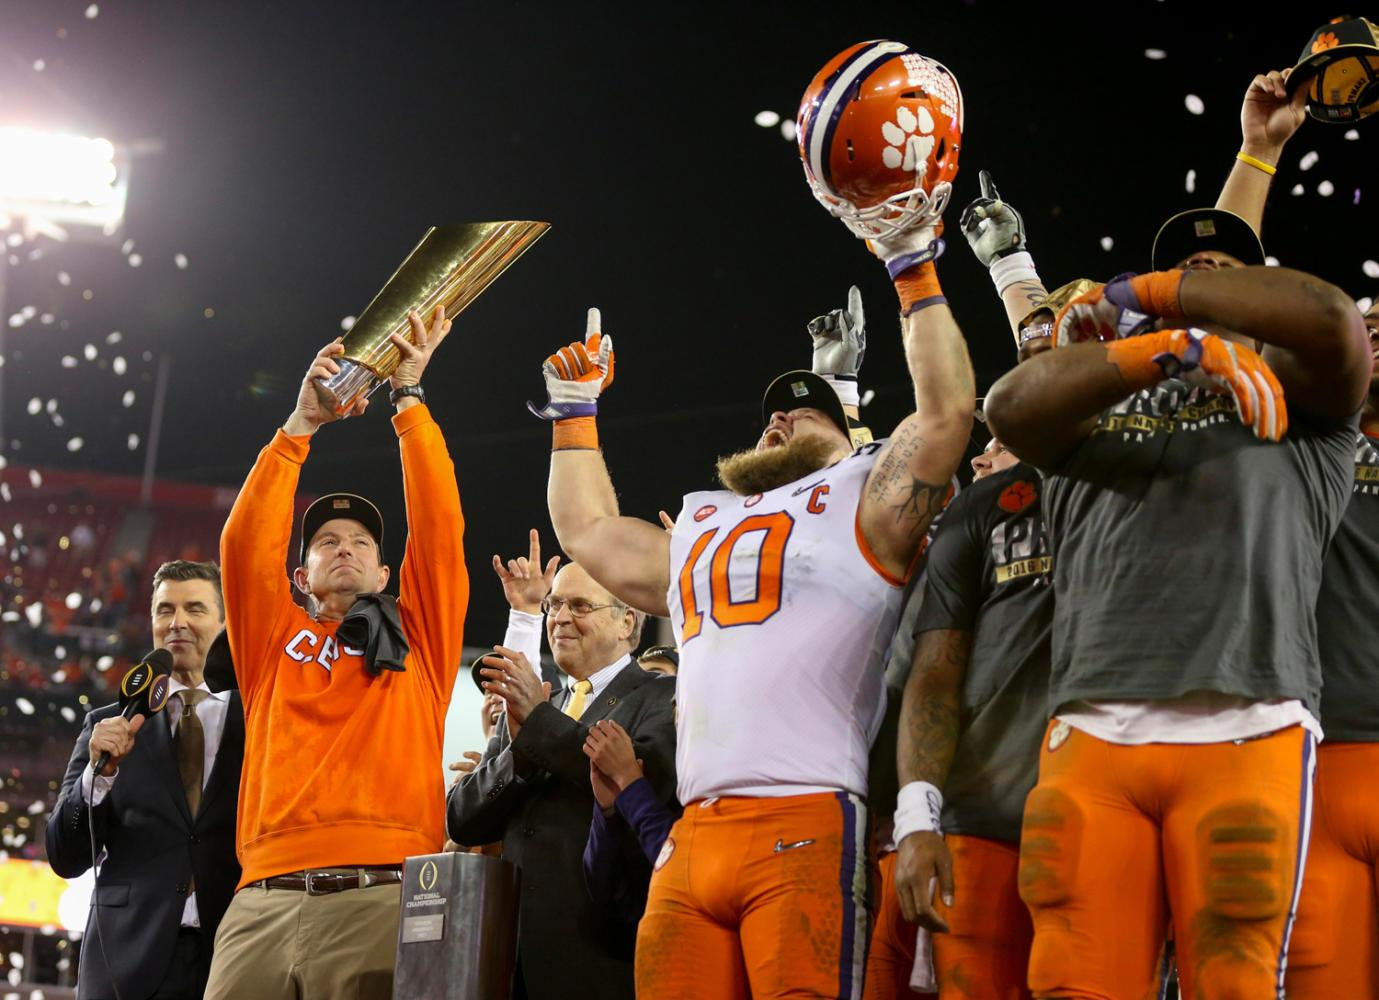 Clemson Tigers head coach Dabo Swinney, left, holds the College Football Playoff National Championship trophy while he and his team celebrate their 35-31 win over the Alabama Crimson Tide Monday, Jan. 9, 2017 in Tampa, Fla. (Loren Elliot/Tampa Bay Times/TNS)